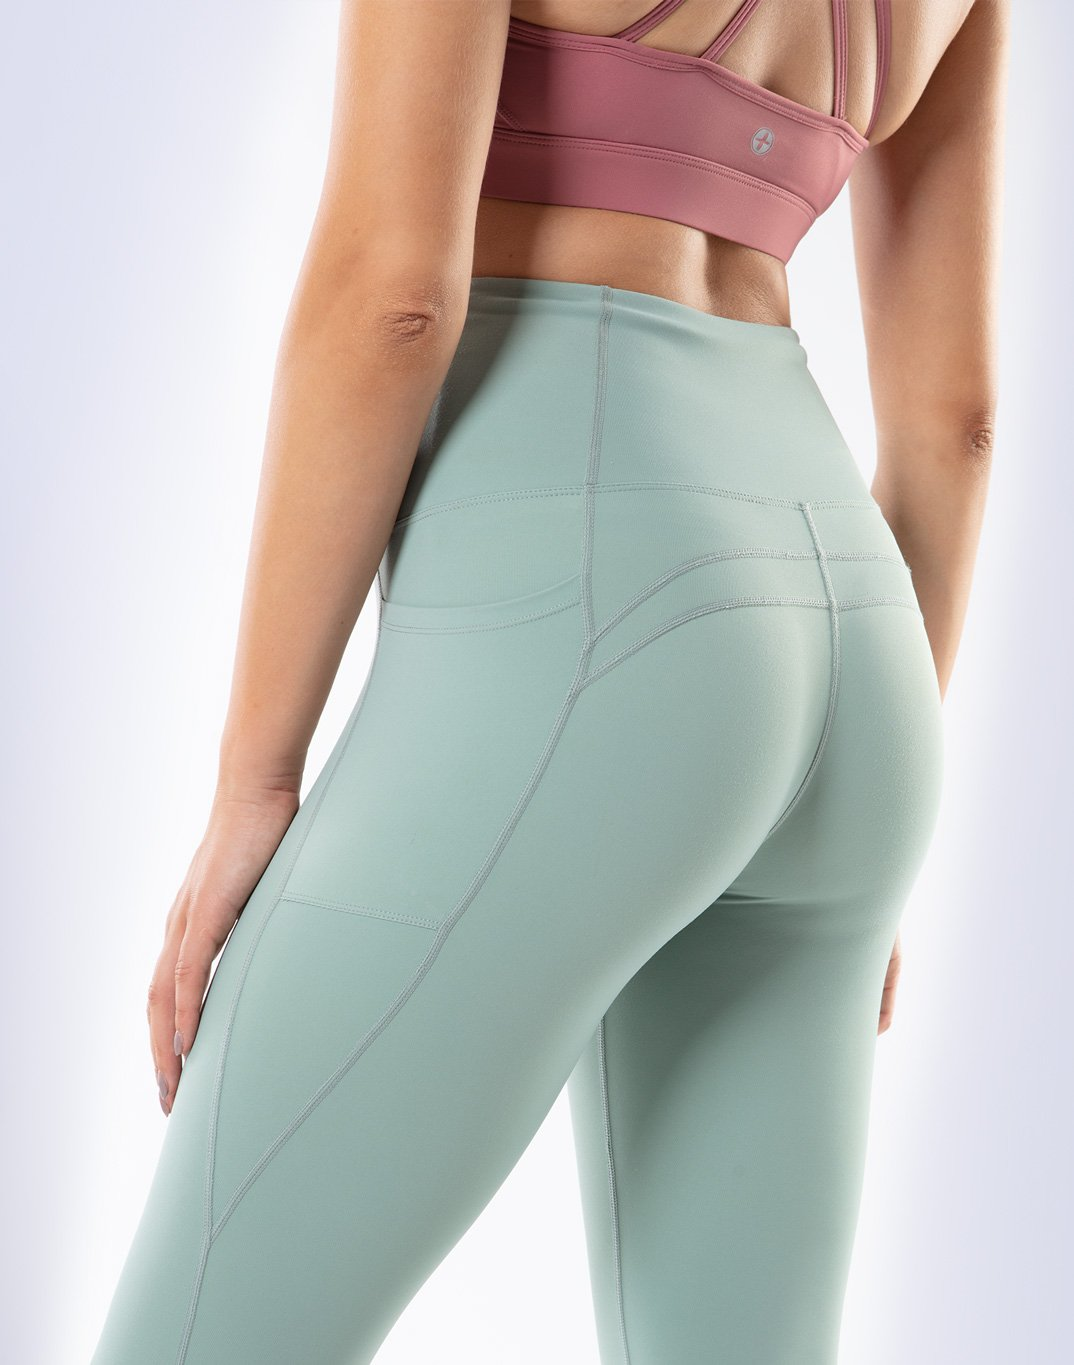 Gym Plus Coffee Leggings Swift High-Rise Legging in Green Designed in Ireland